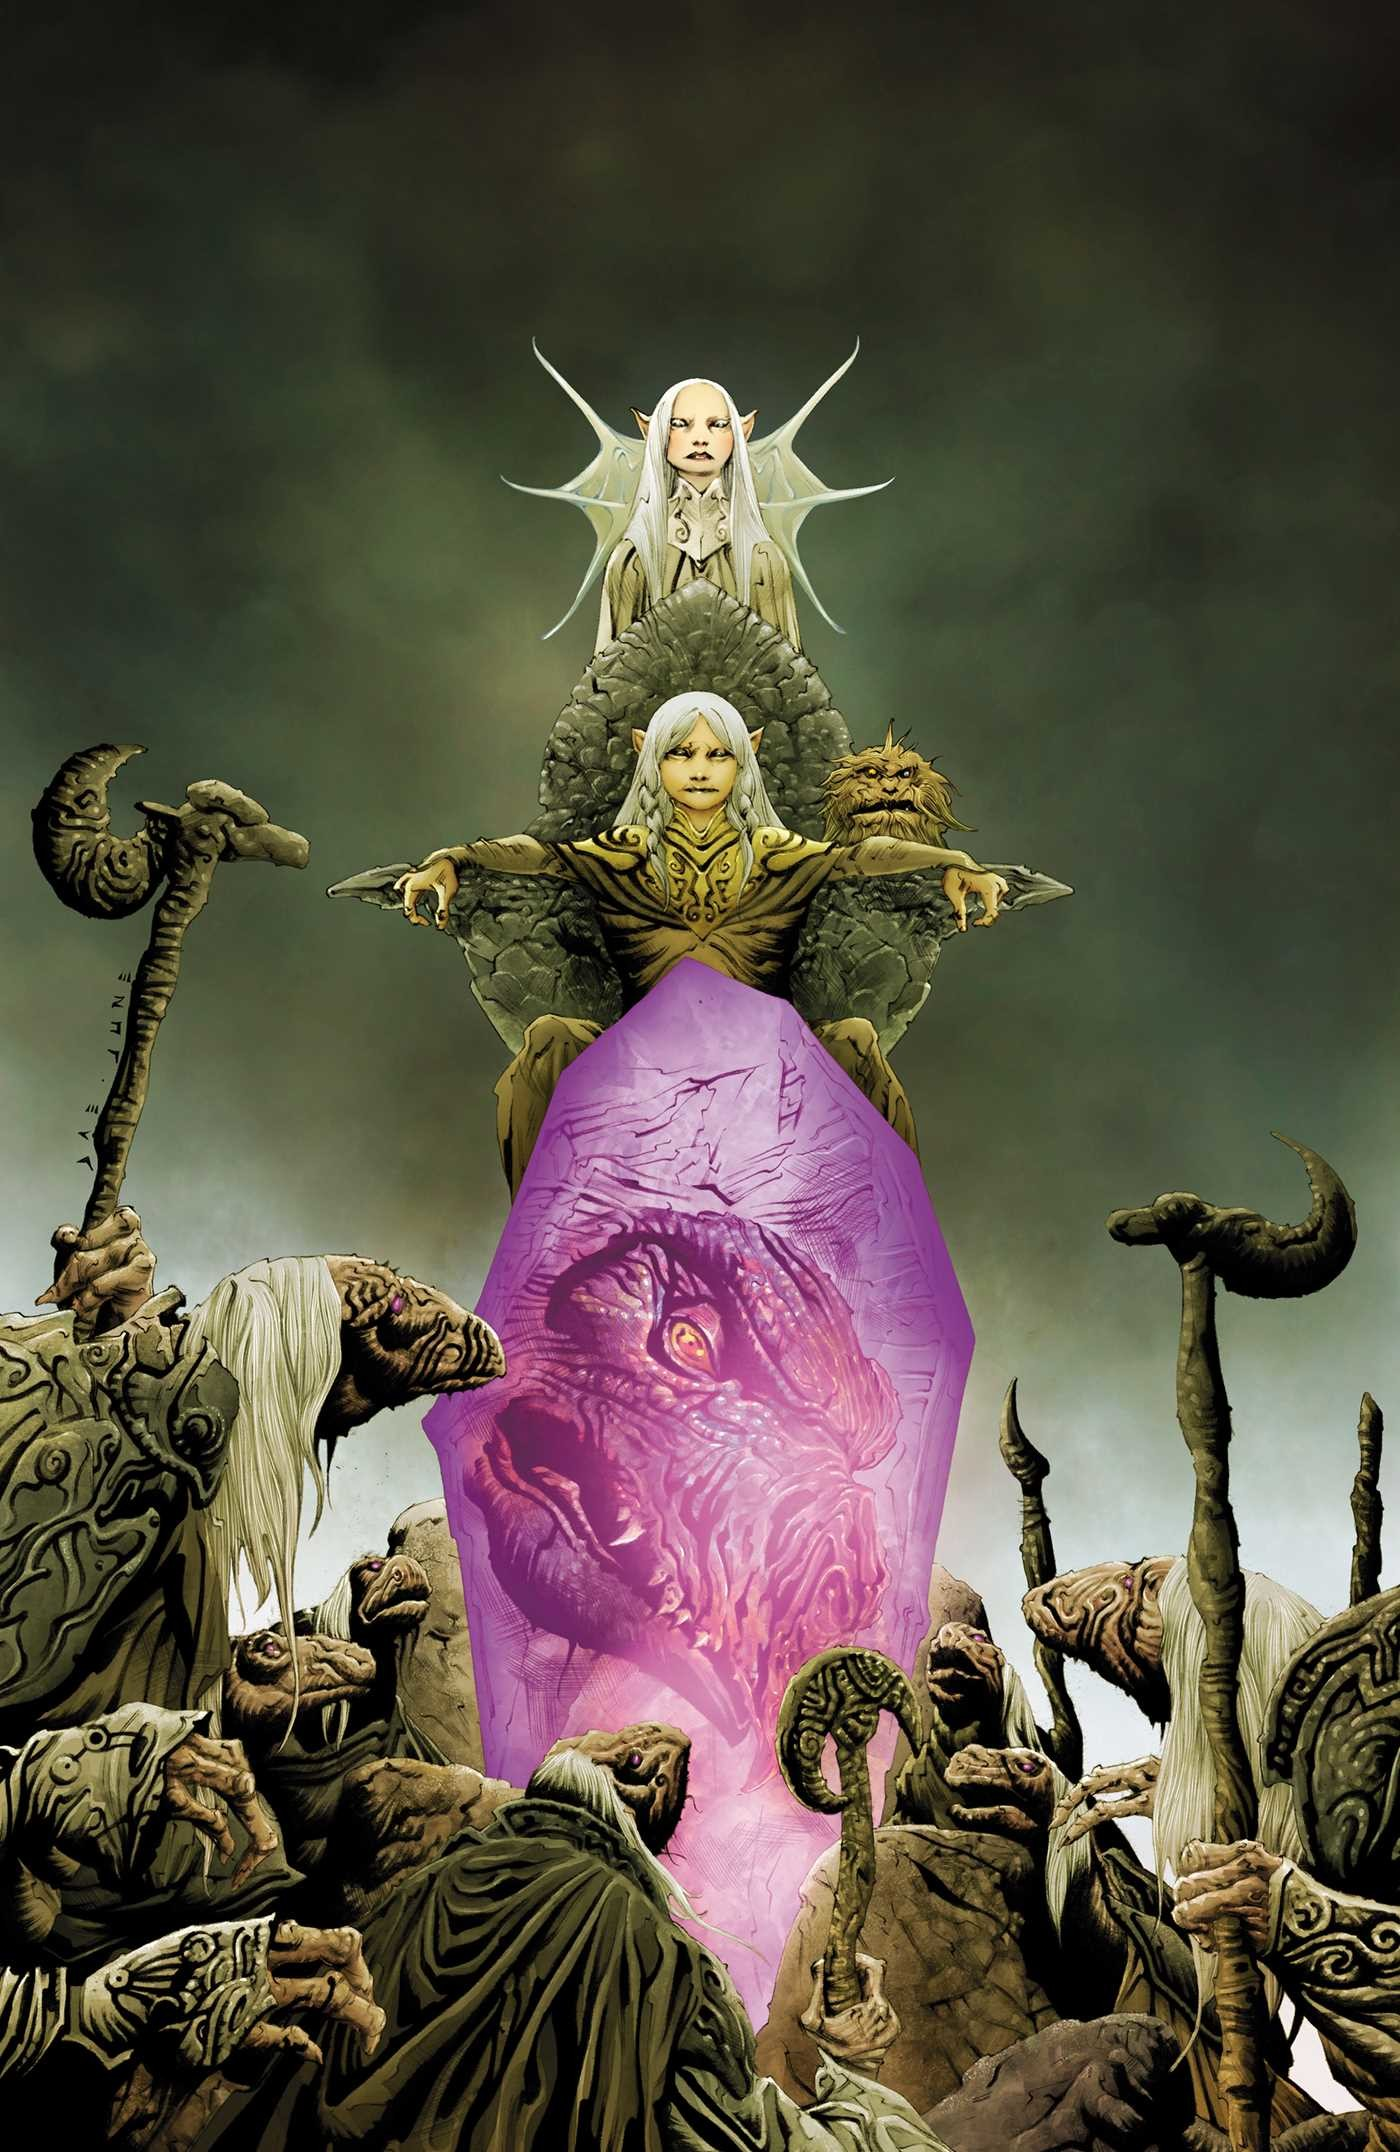 Jim hensons the dark crystal artist tribute 9781684151820.in02